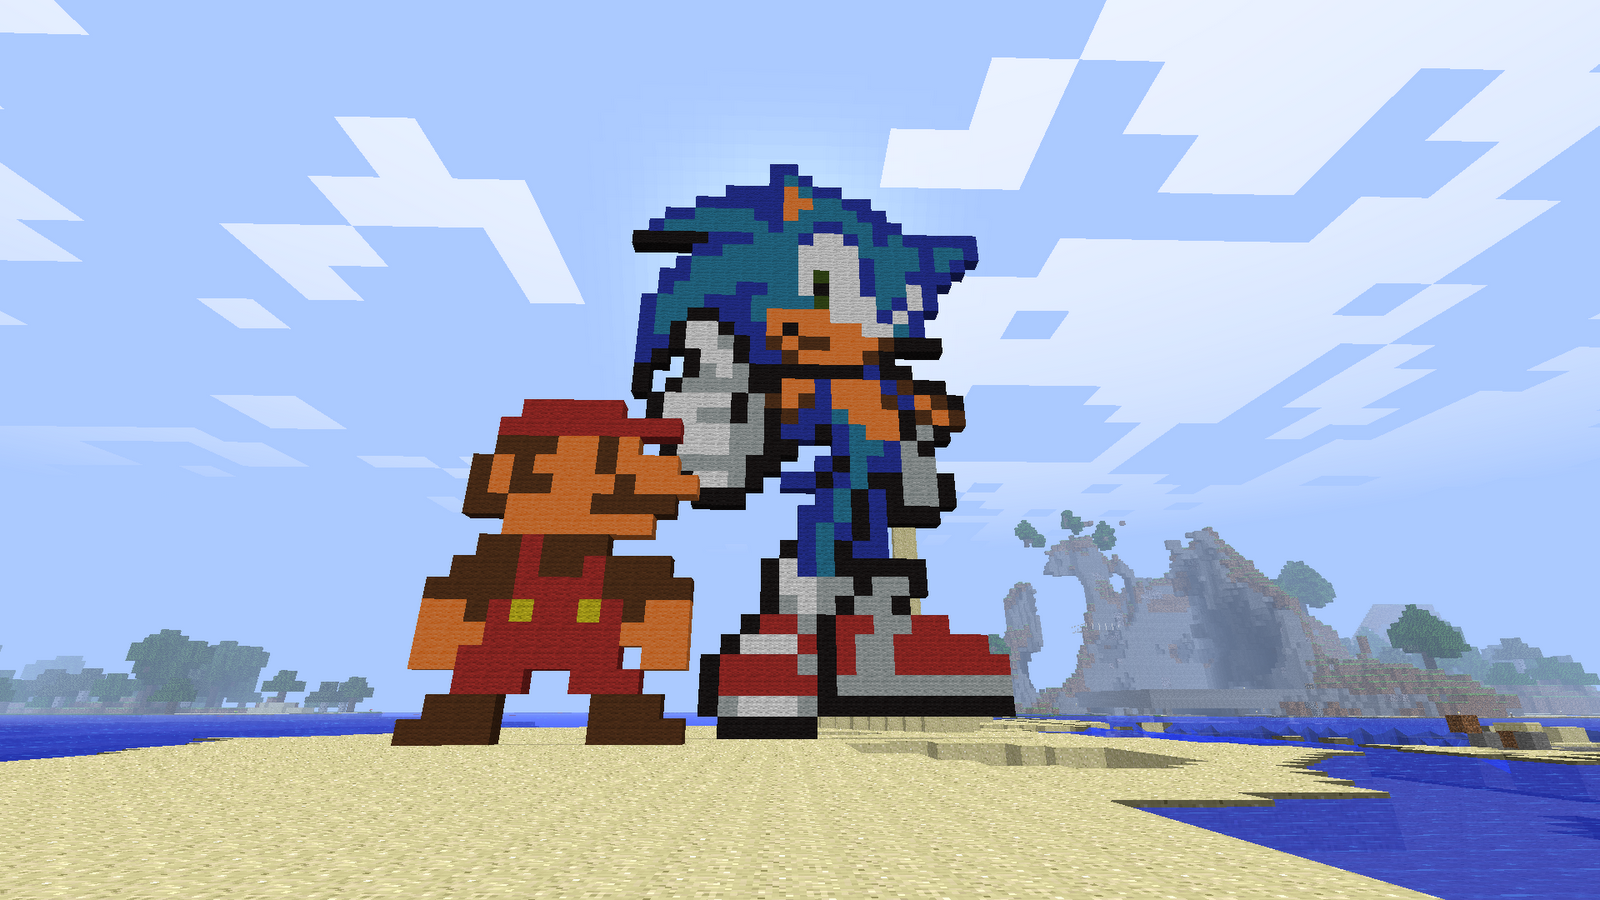 Minecraft Mario And Sonic - Sonic the Hedgehog foto (40252462) - Fanpop